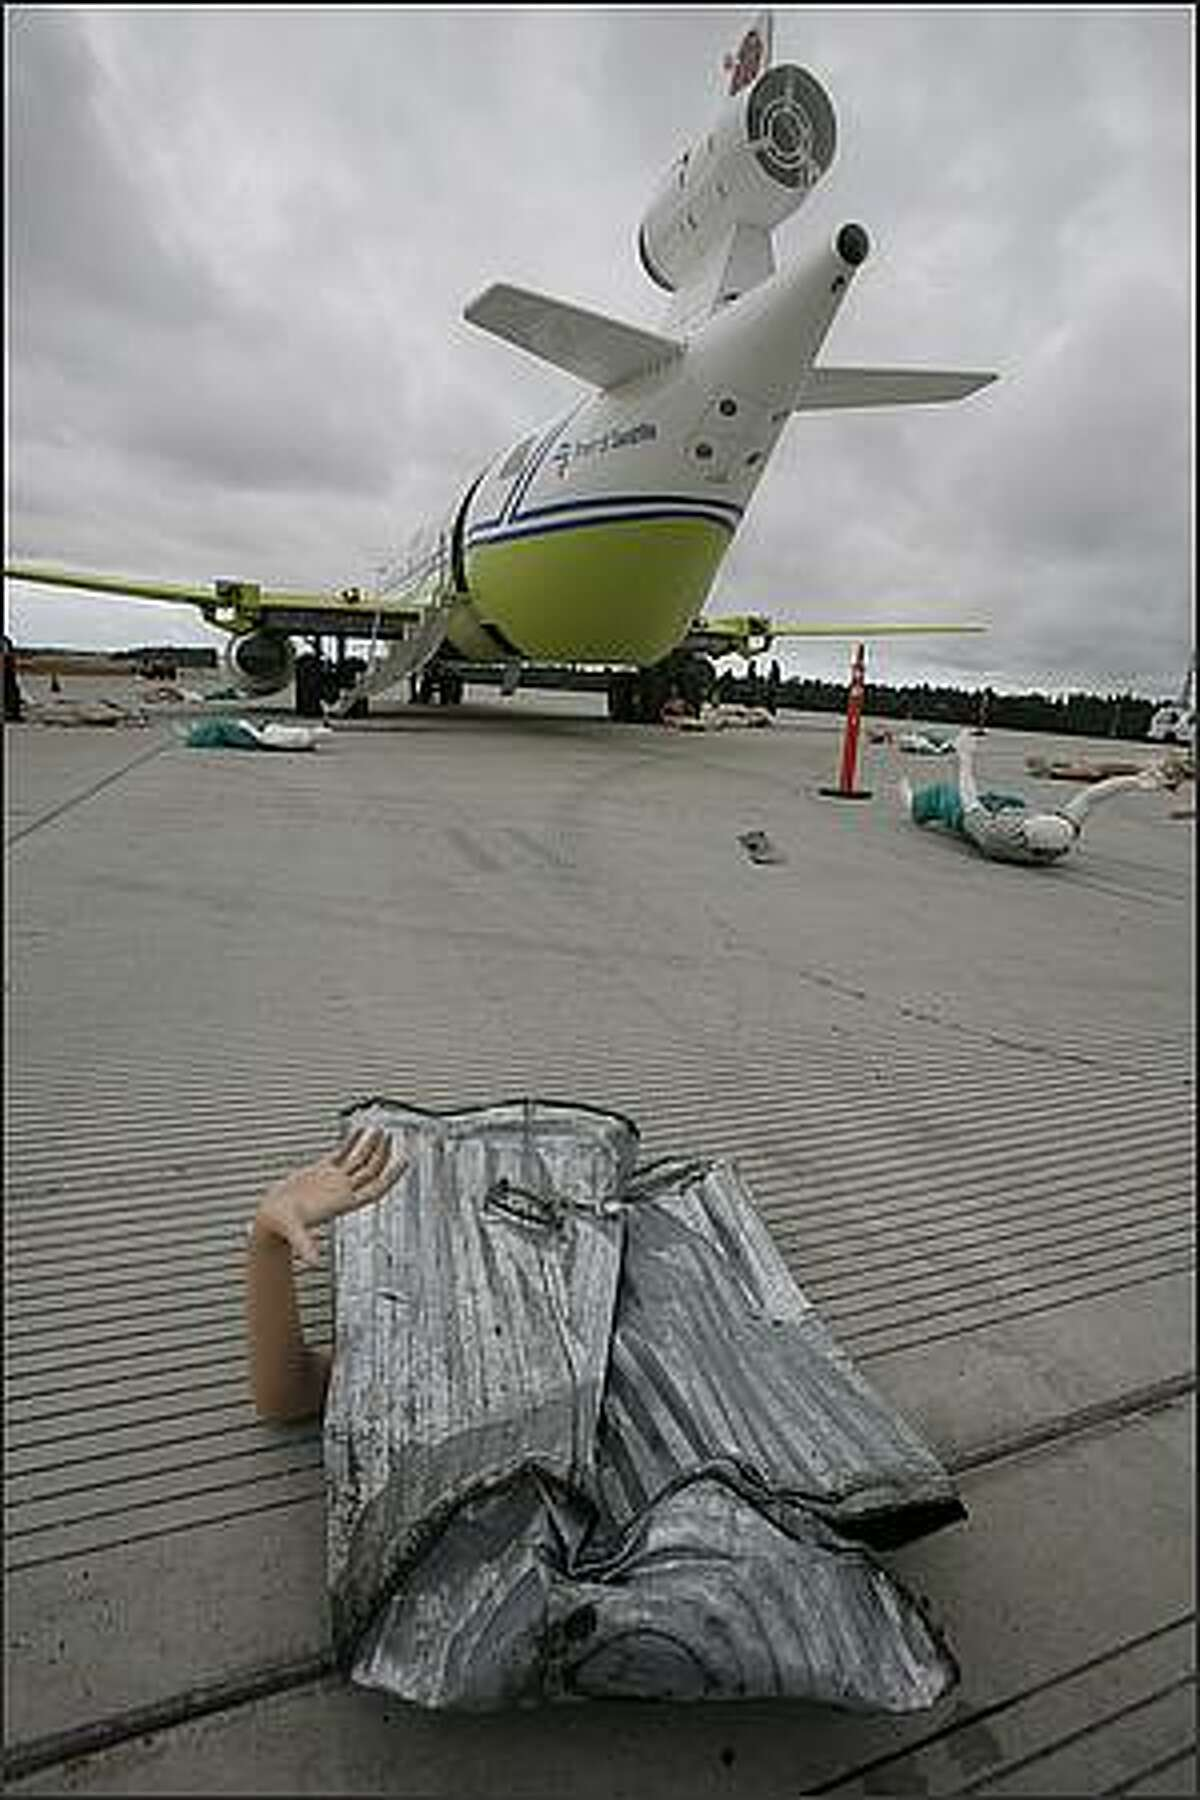 A body part on Seattle-Tacoma International Airport during a airplane crash preparedness exercise.